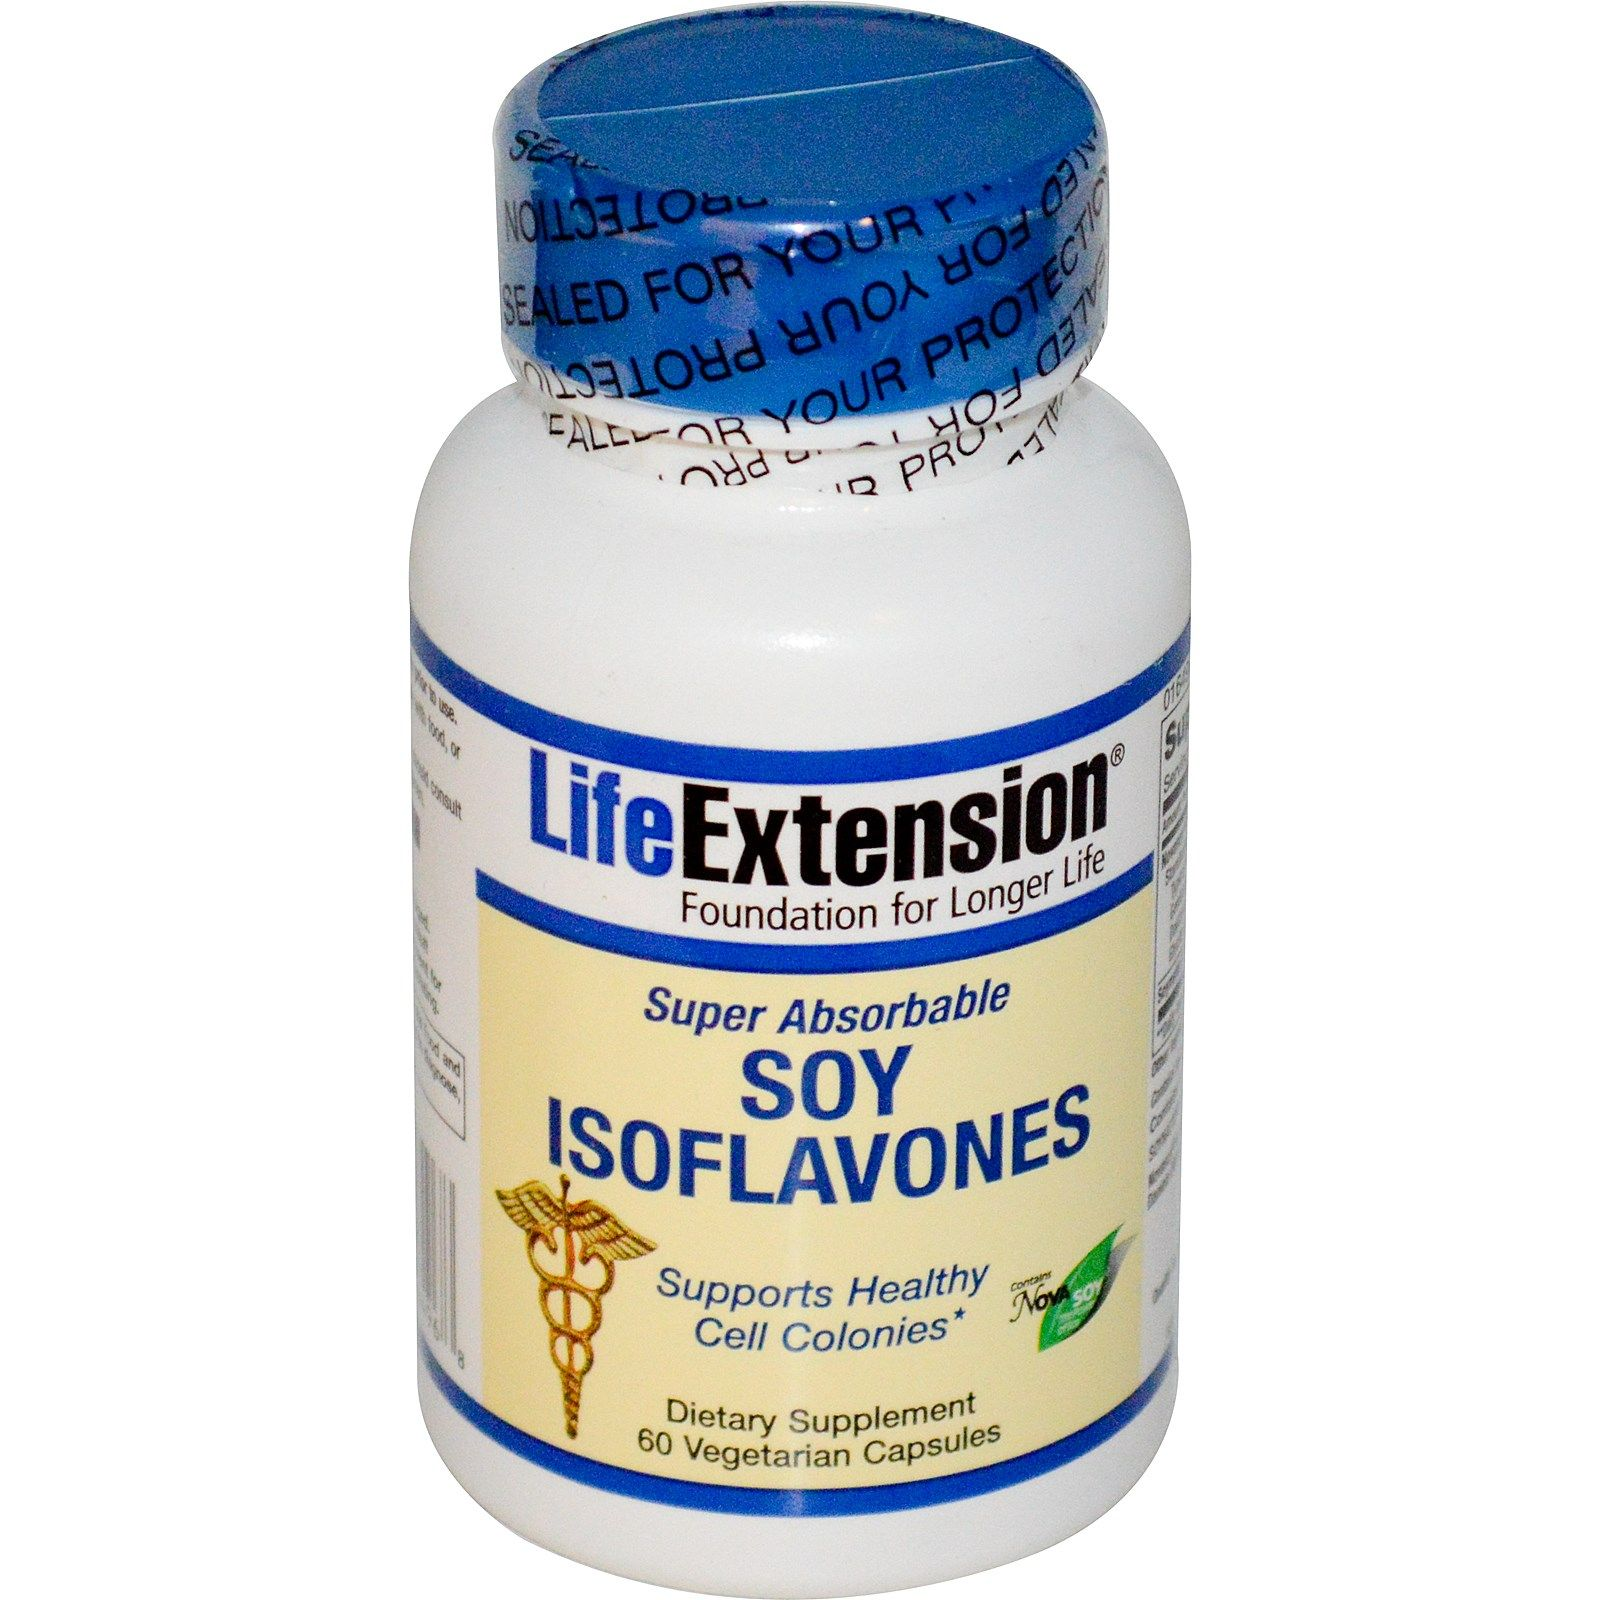 Life Extension, Soy Isoflavones, Super Absorbable, 60